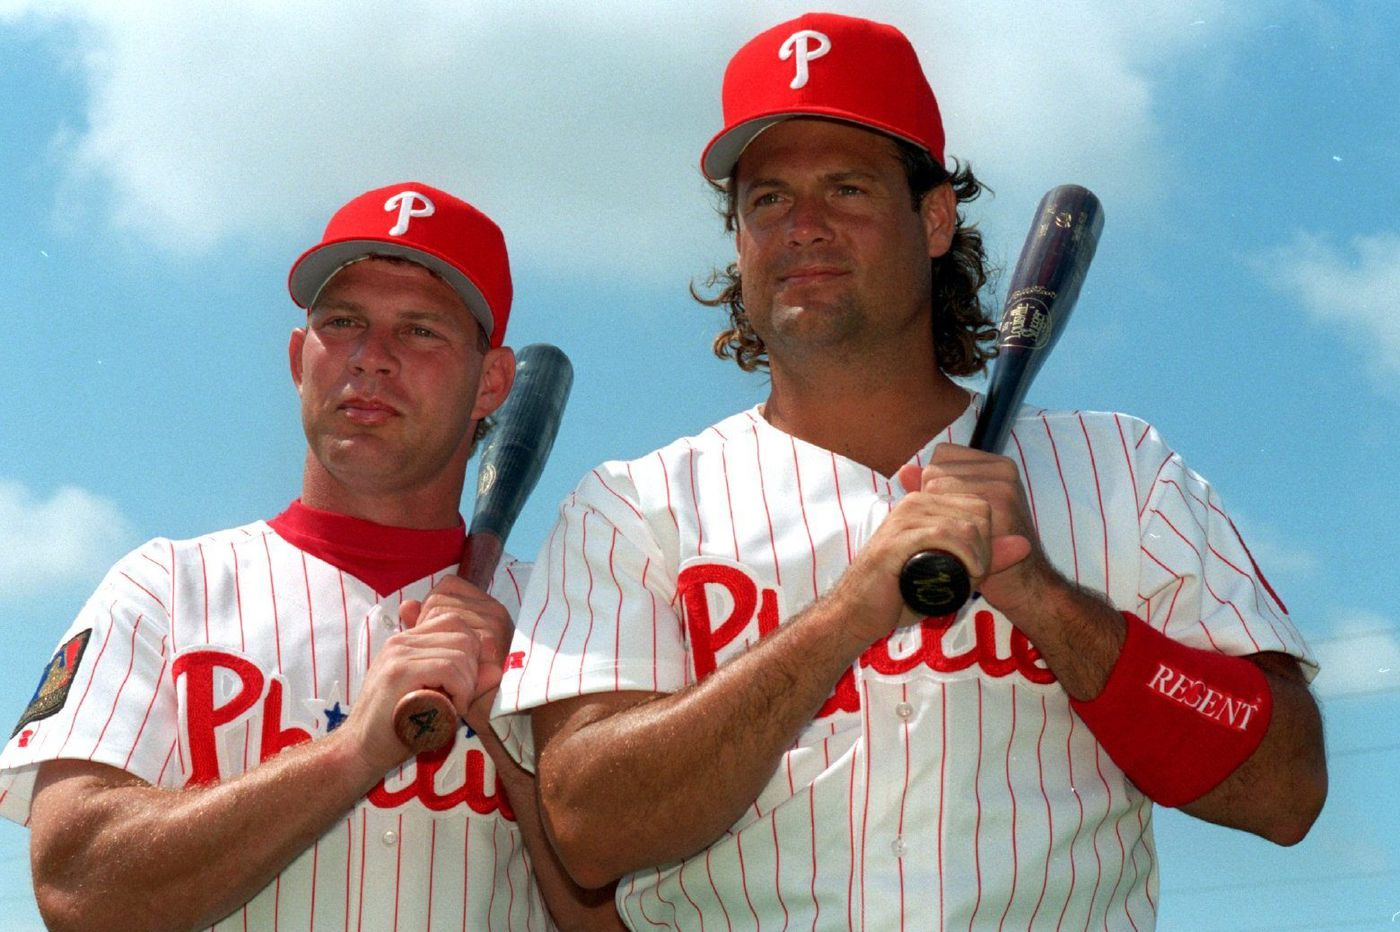 Drinks with Darren Daulton, car rides with Lenny Dykstra: One beat writer's memories of 1993 Phillies